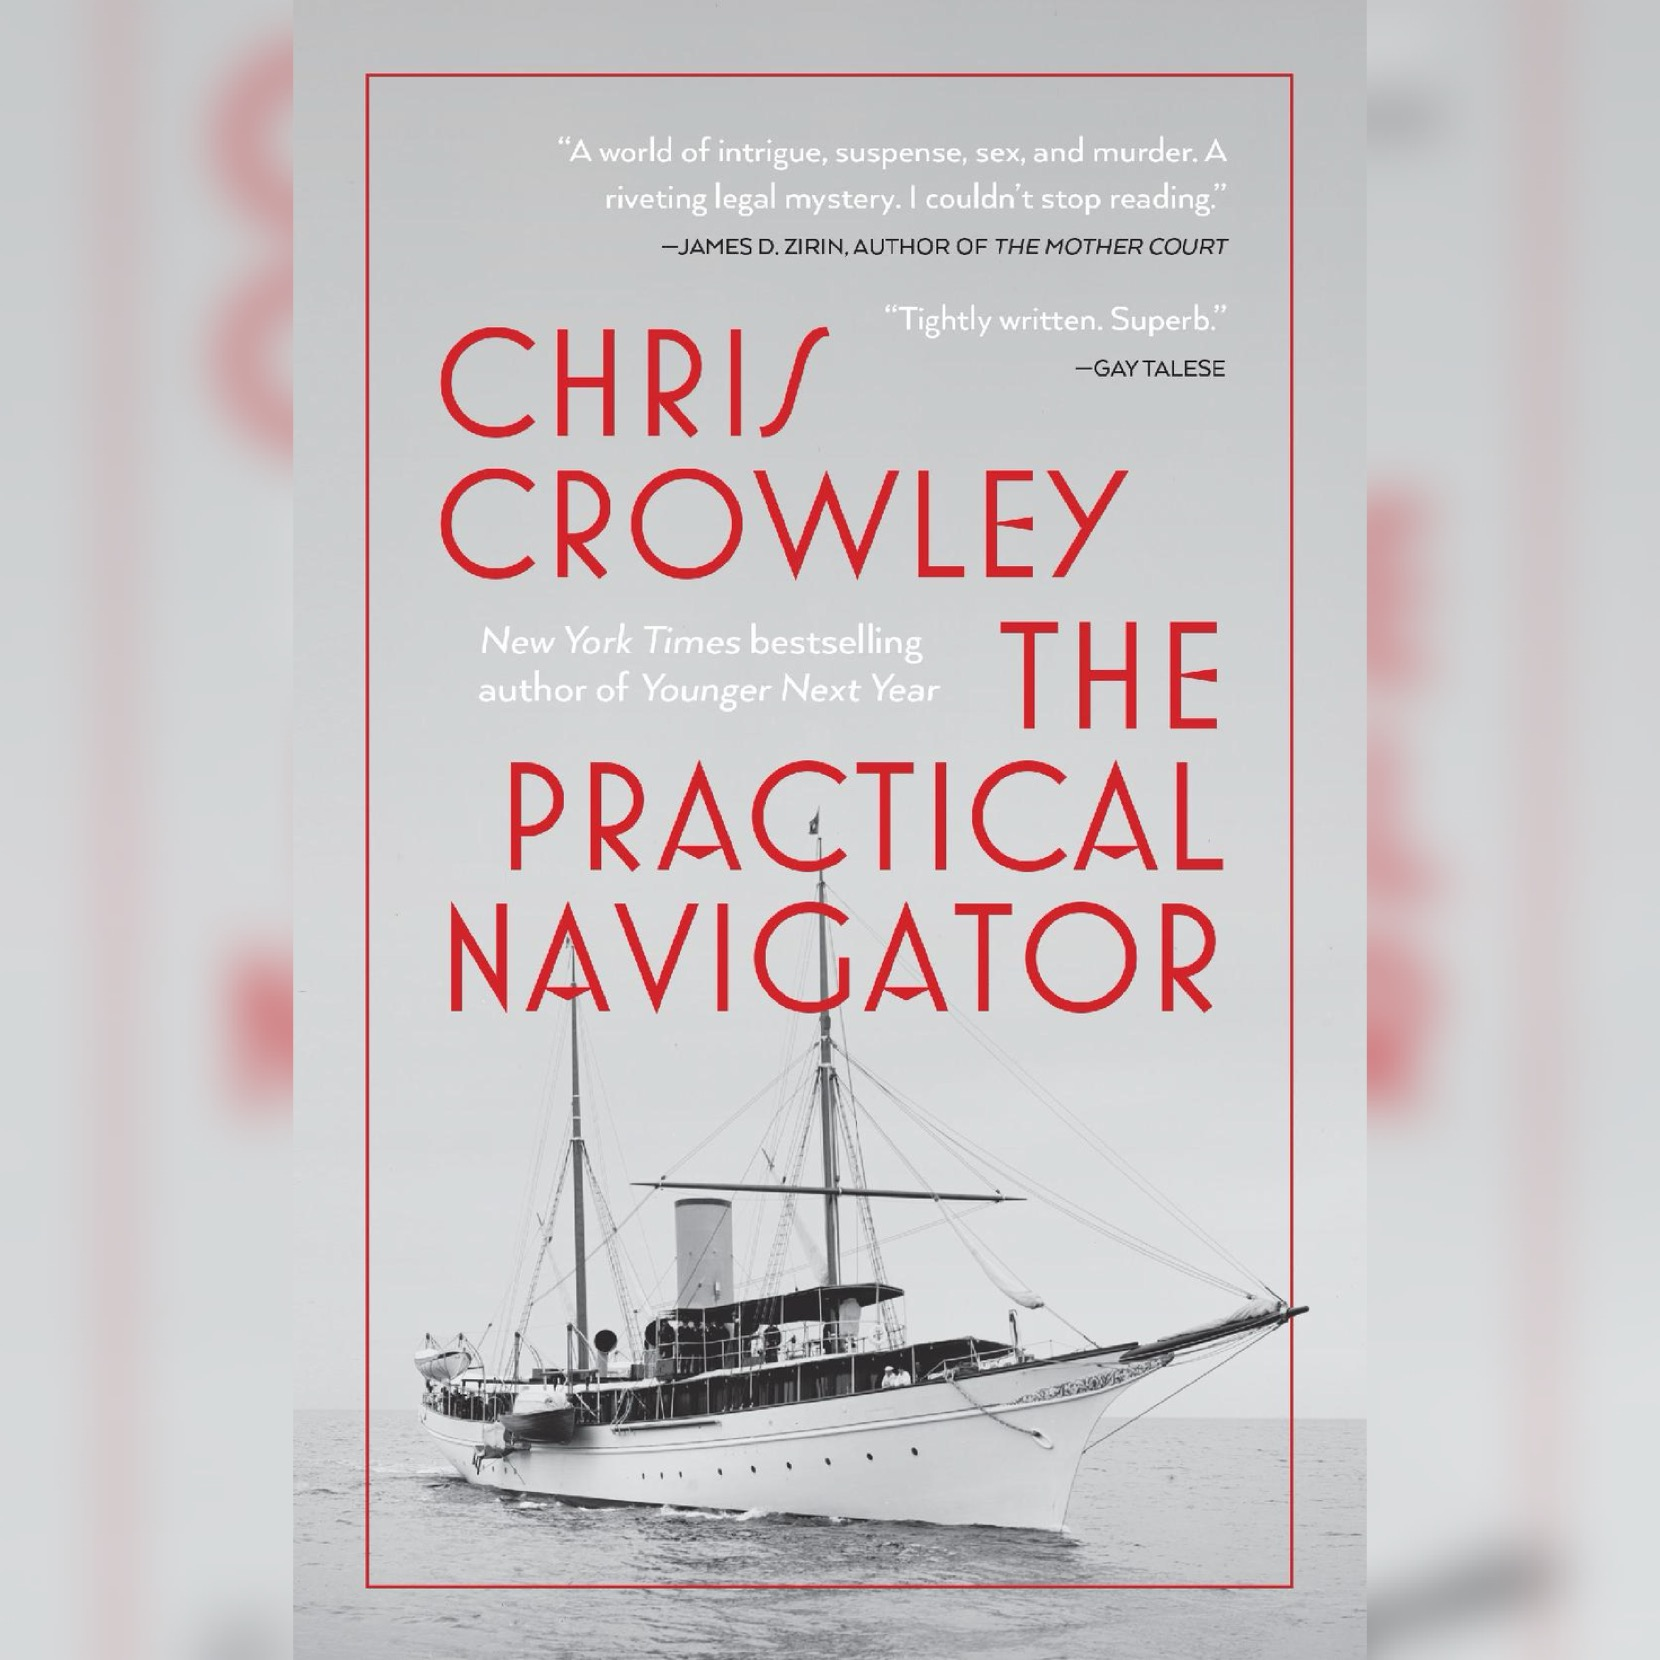 Chris Crowley's The Practical Navigator book press image for use by 360 Magazine